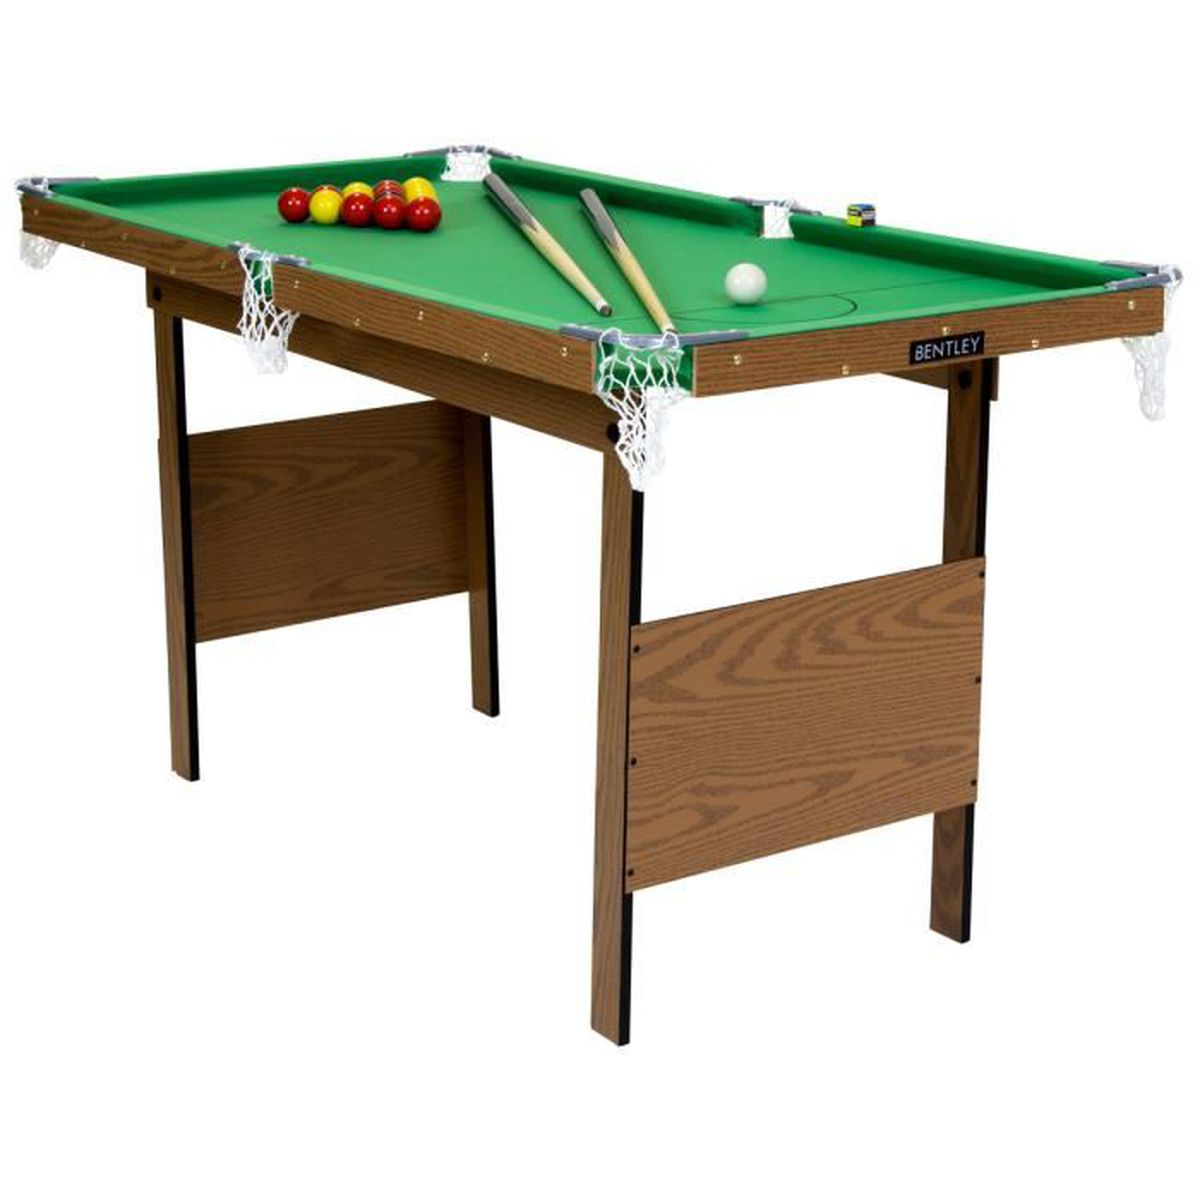 table de snooker billard avec billes vert 122 cm achat vente billard cdiscount. Black Bedroom Furniture Sets. Home Design Ideas